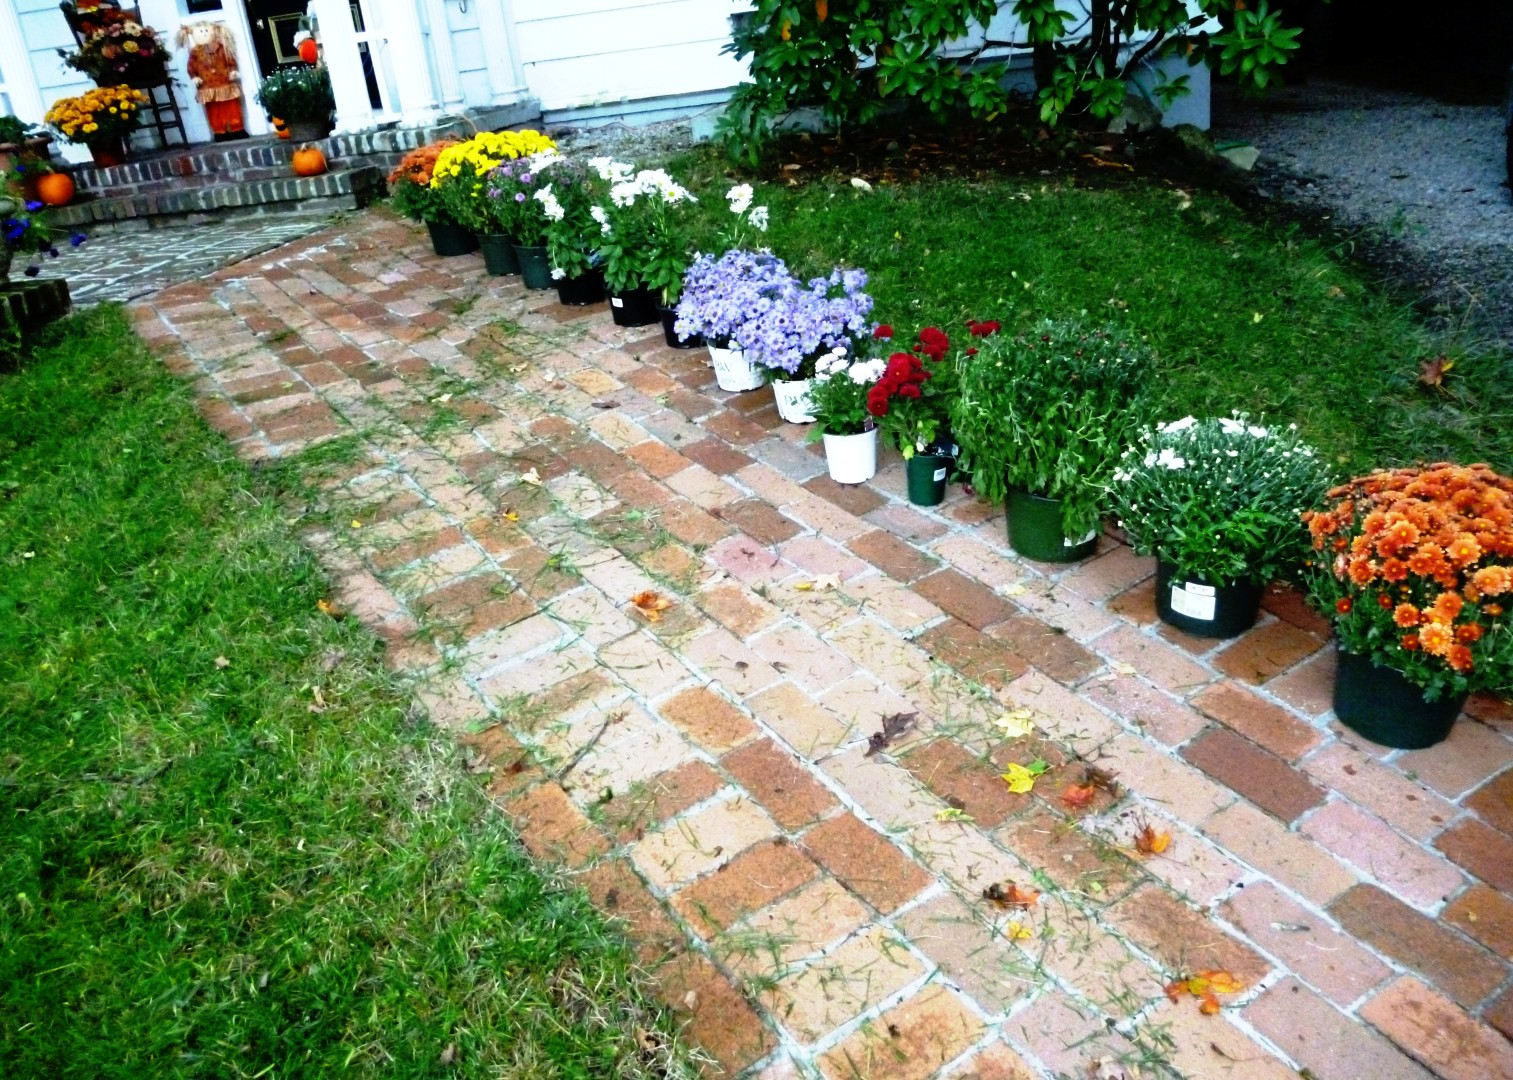 Round Flower Bed : Round Flower Bed : Round Brick Flower Bed